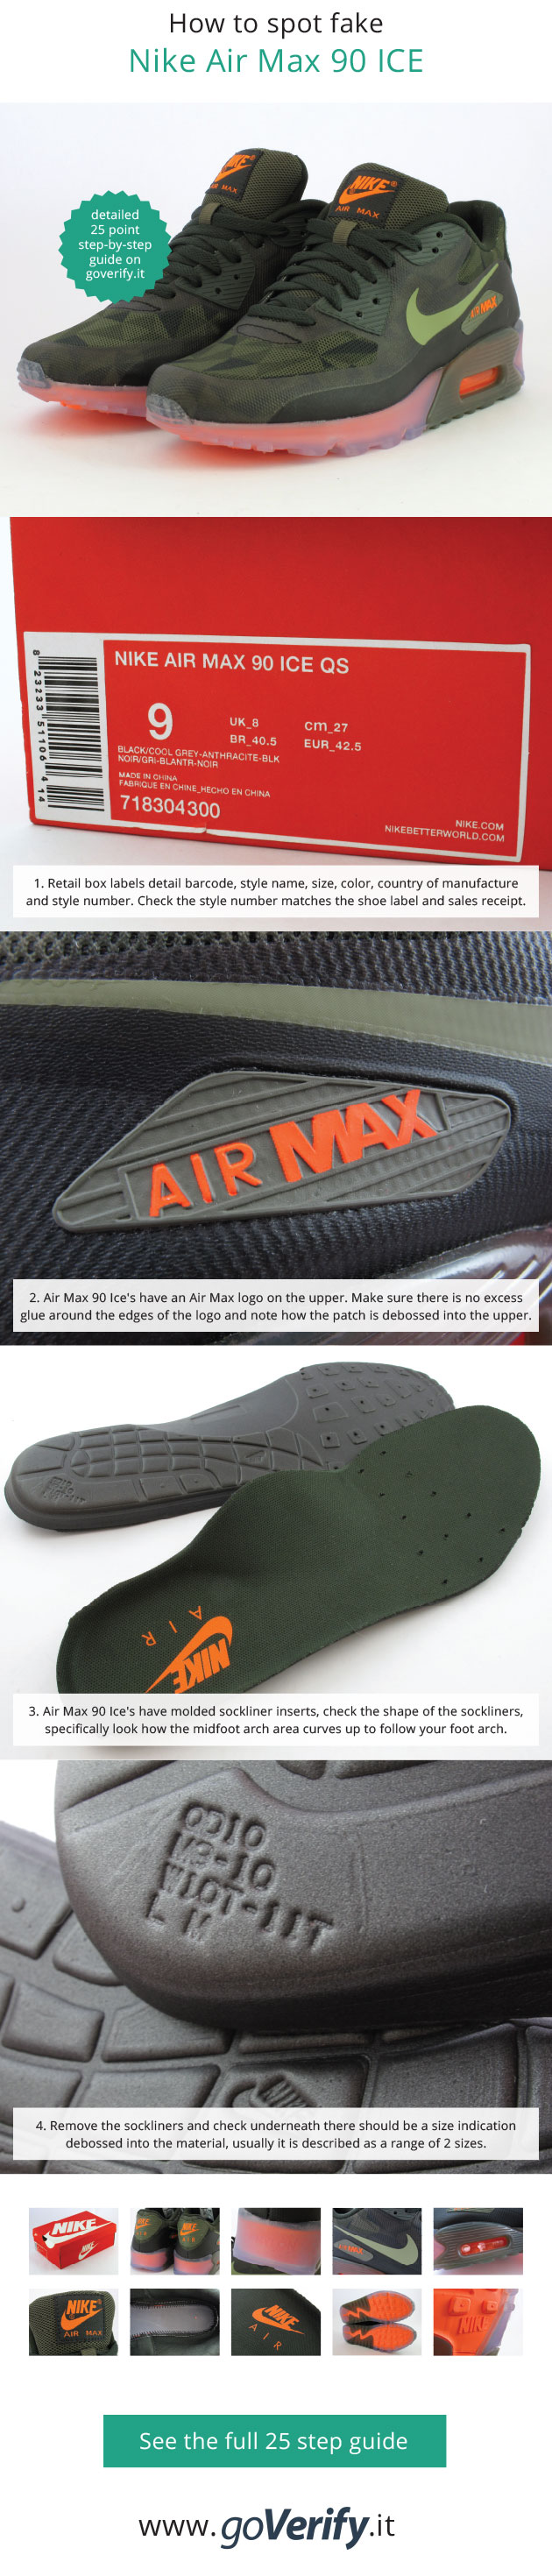 online store 55a2e 2d9c7 ... canada how to spot fake nike air max 90s go to goverify.it for a